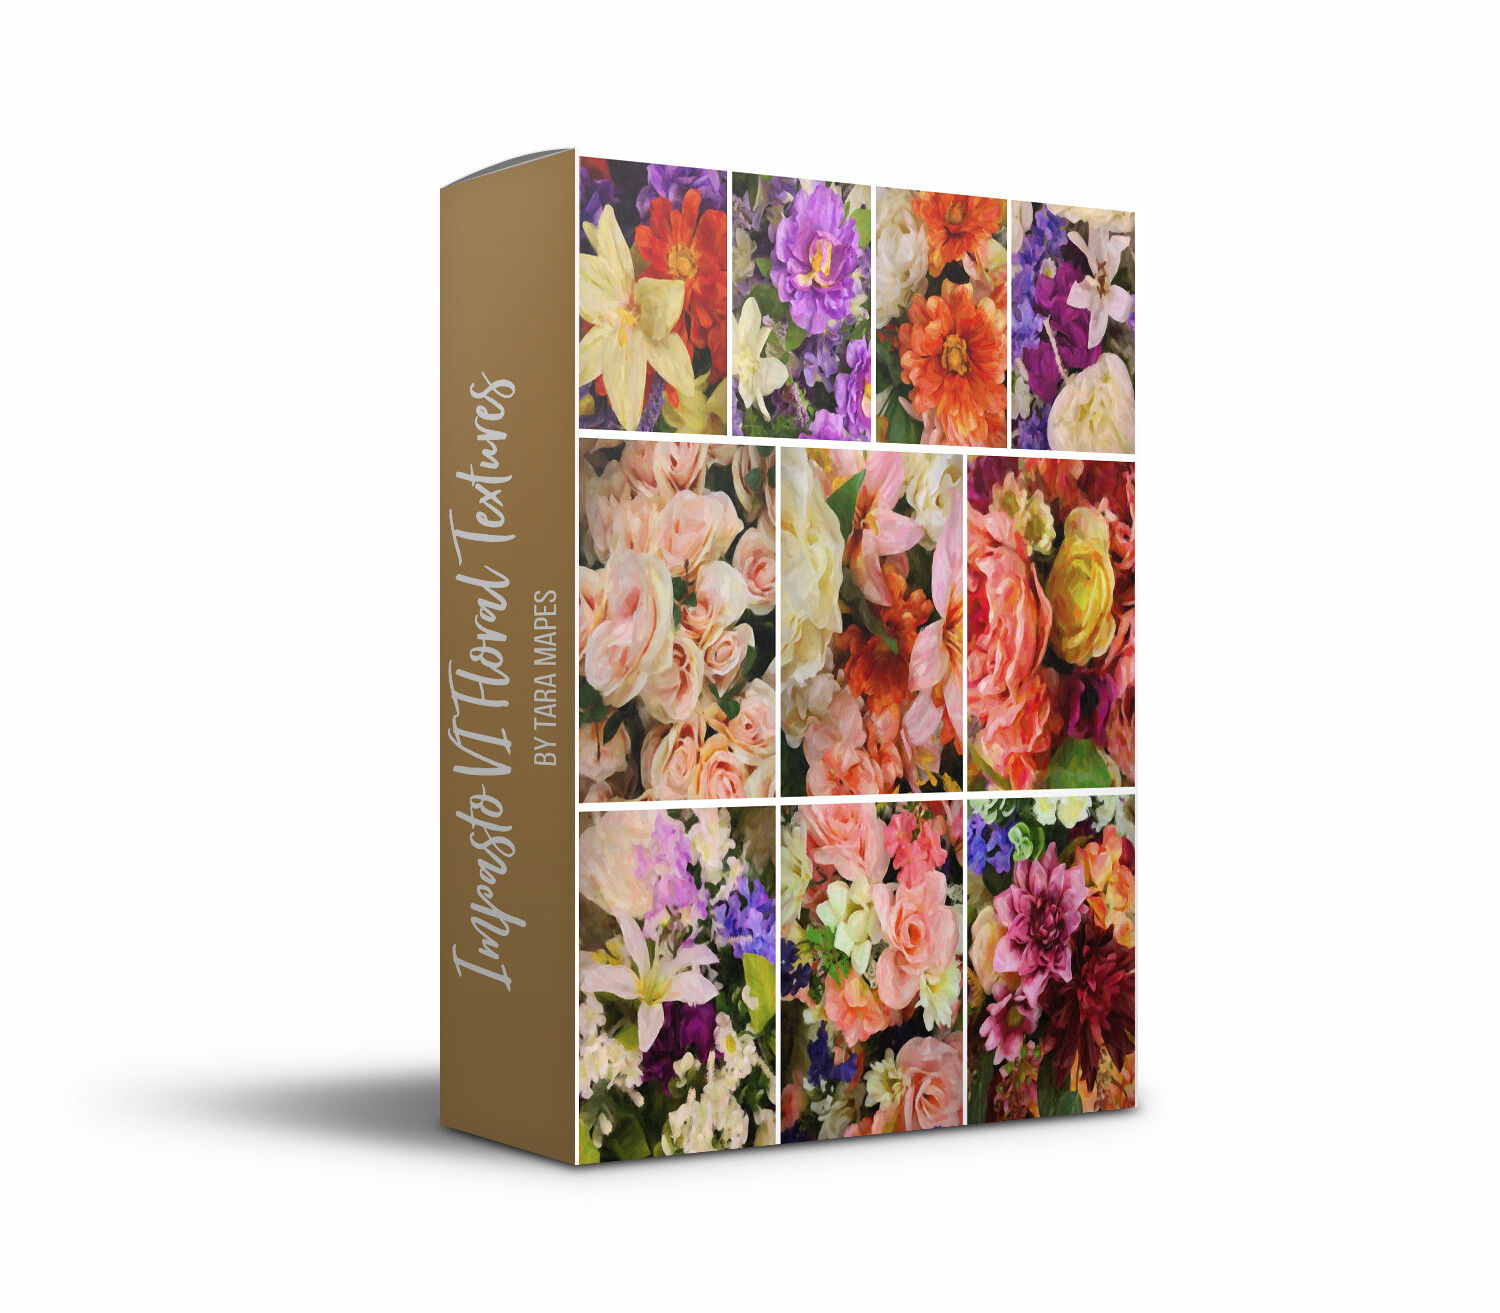 Impasto Set VI Floral Collection Fine Art Texture Overlays - 10 Digital Painted Floral Textures -  Photoshop Overlays by Tara Mapes